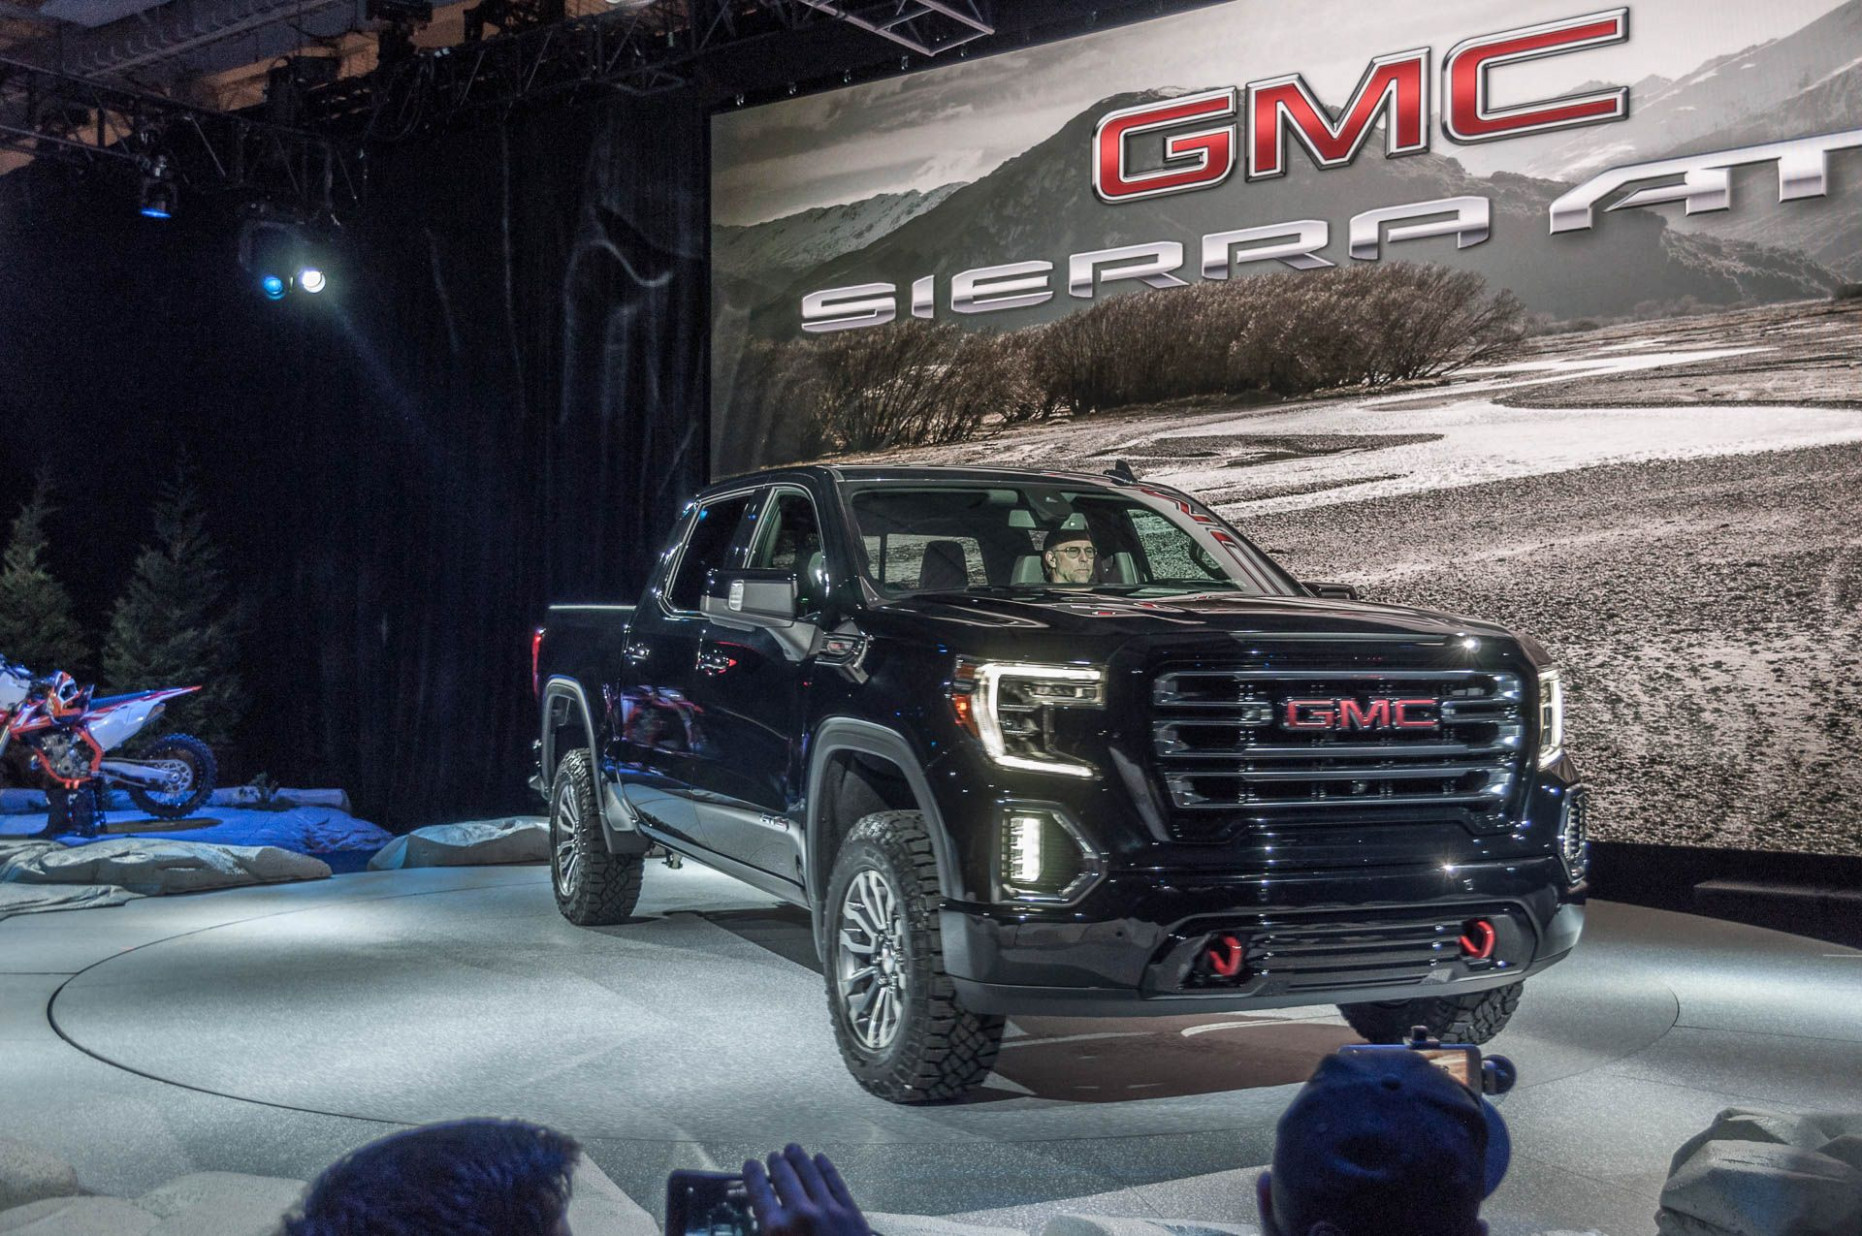 used 6 GMC sierra Release, Specs and Review 6*6 - used 6 ..